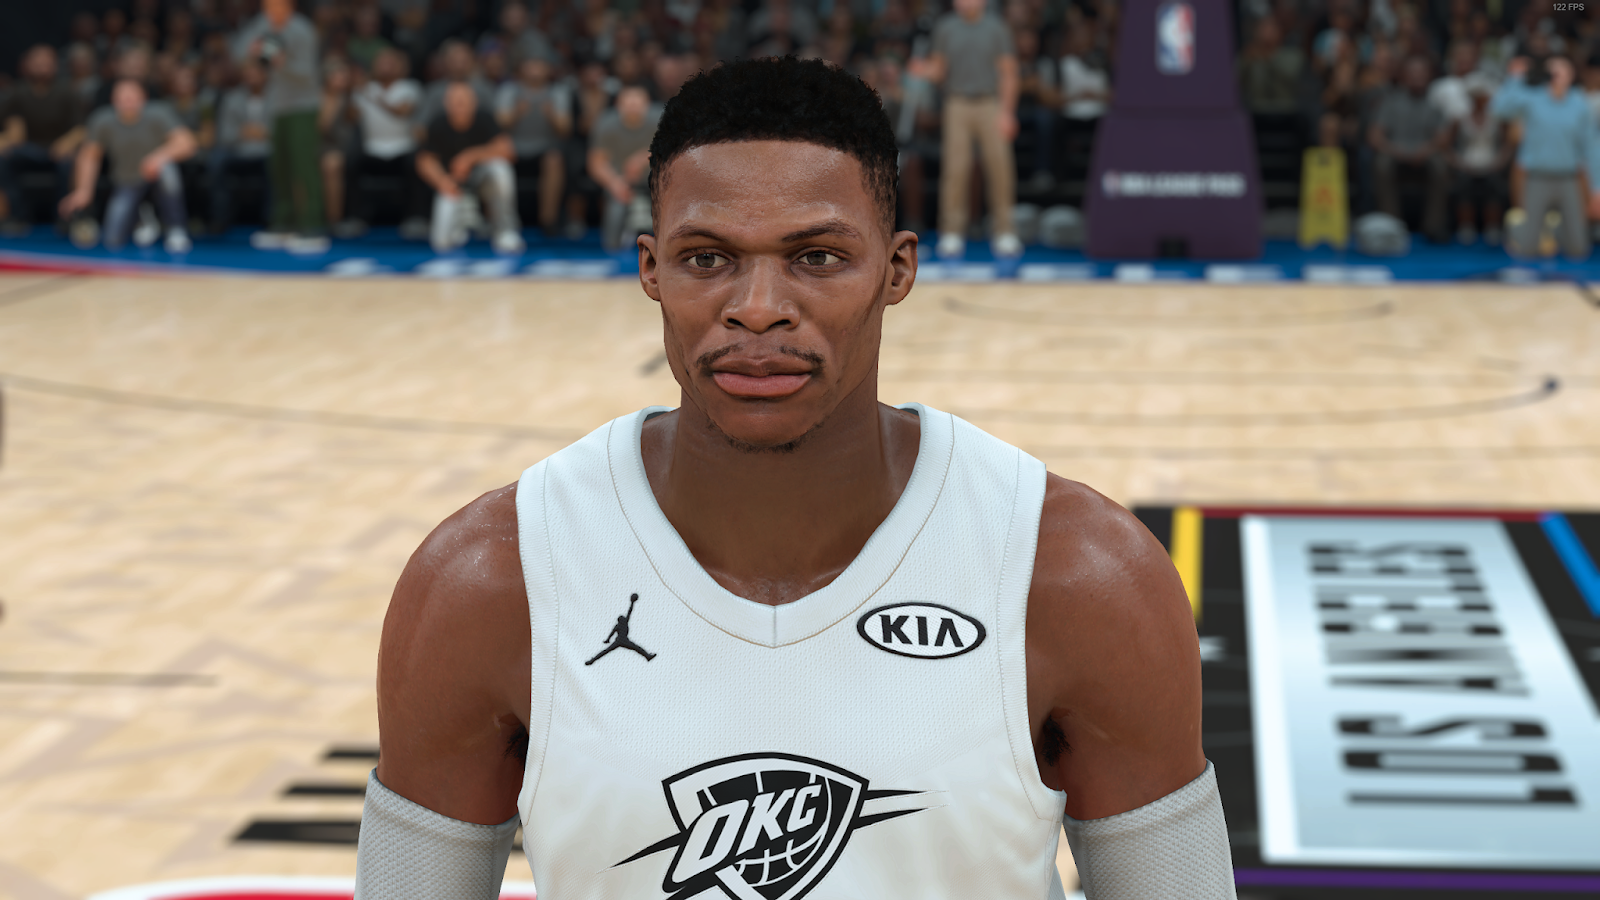 NBA 2K18 Russell Westbrook Cyberface by MRK326 RELEASED